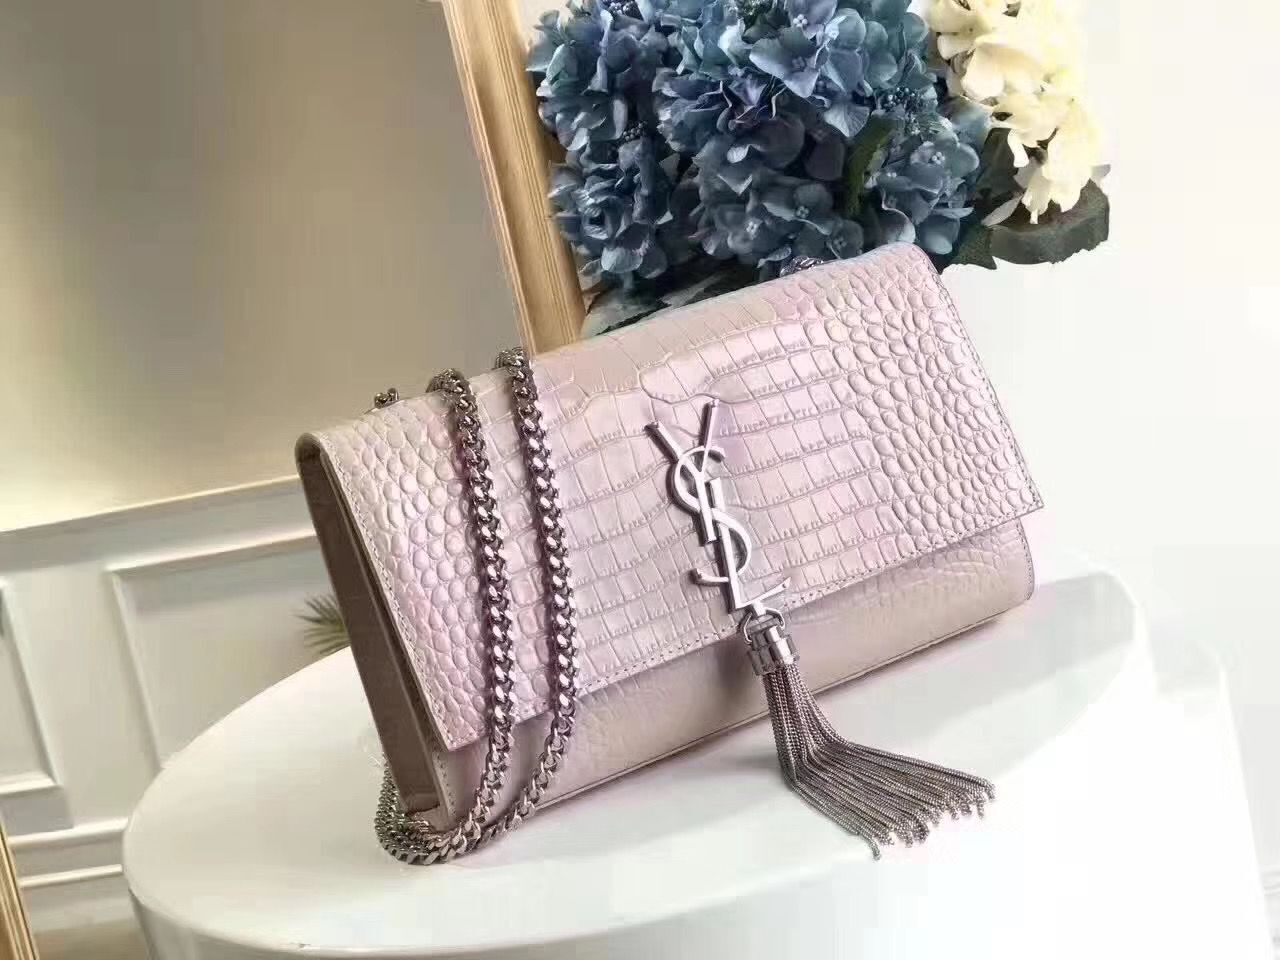 Yves Saint Laurent Crocodile Original Leather Shoulder Bag 1456 Pink&Silver